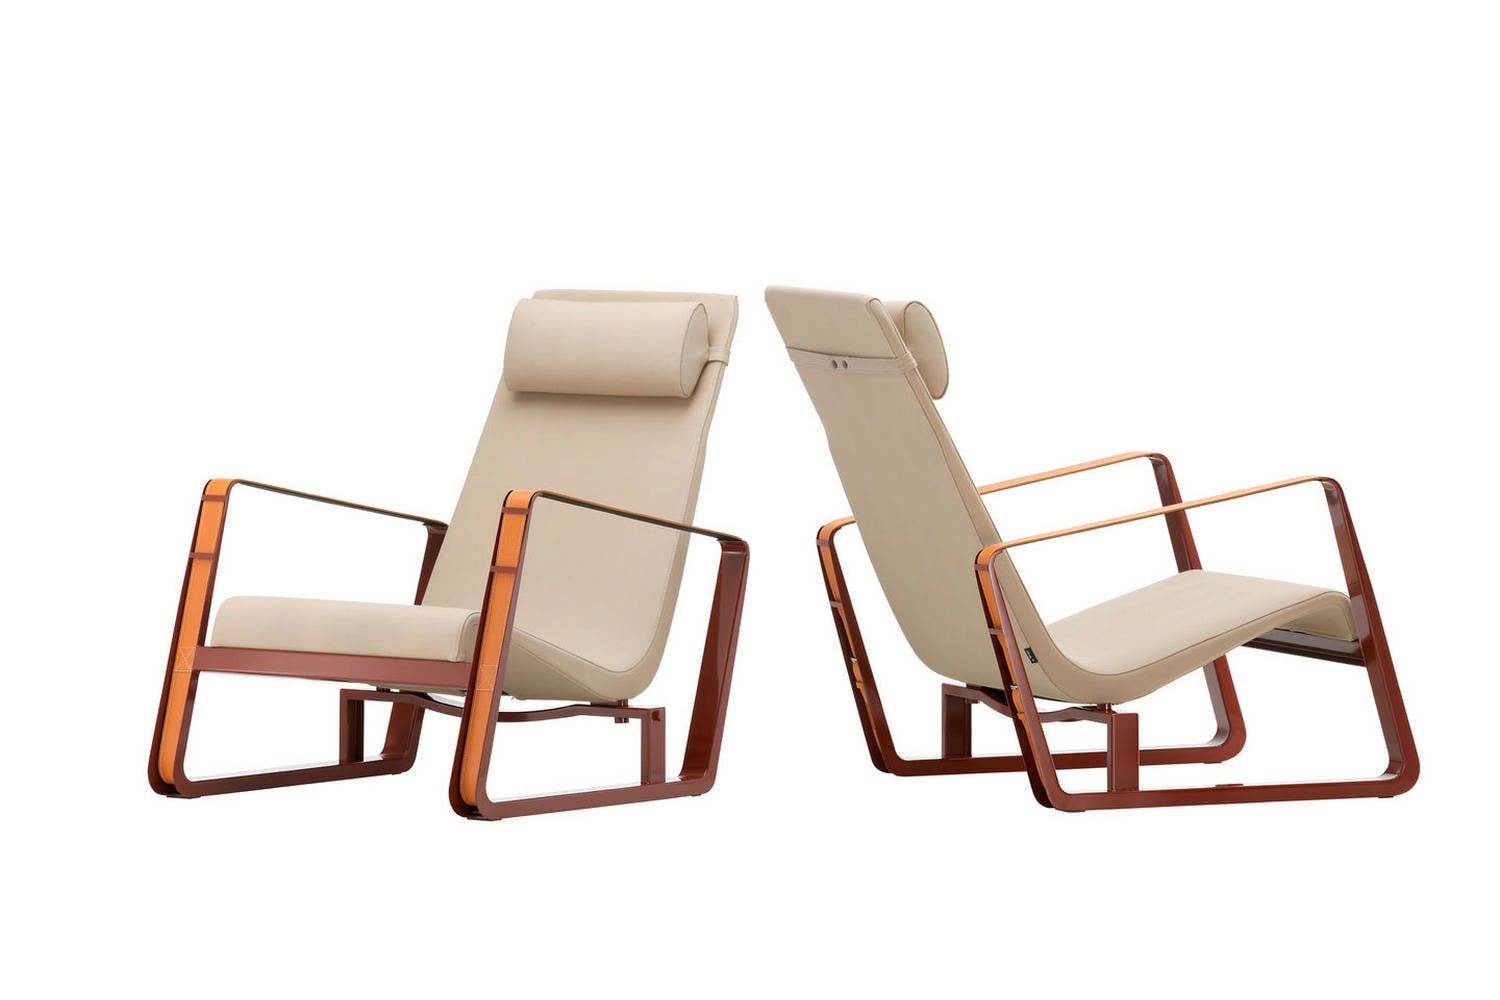 Cite Armchair By Jean Prouve For Vitra Space Furniture